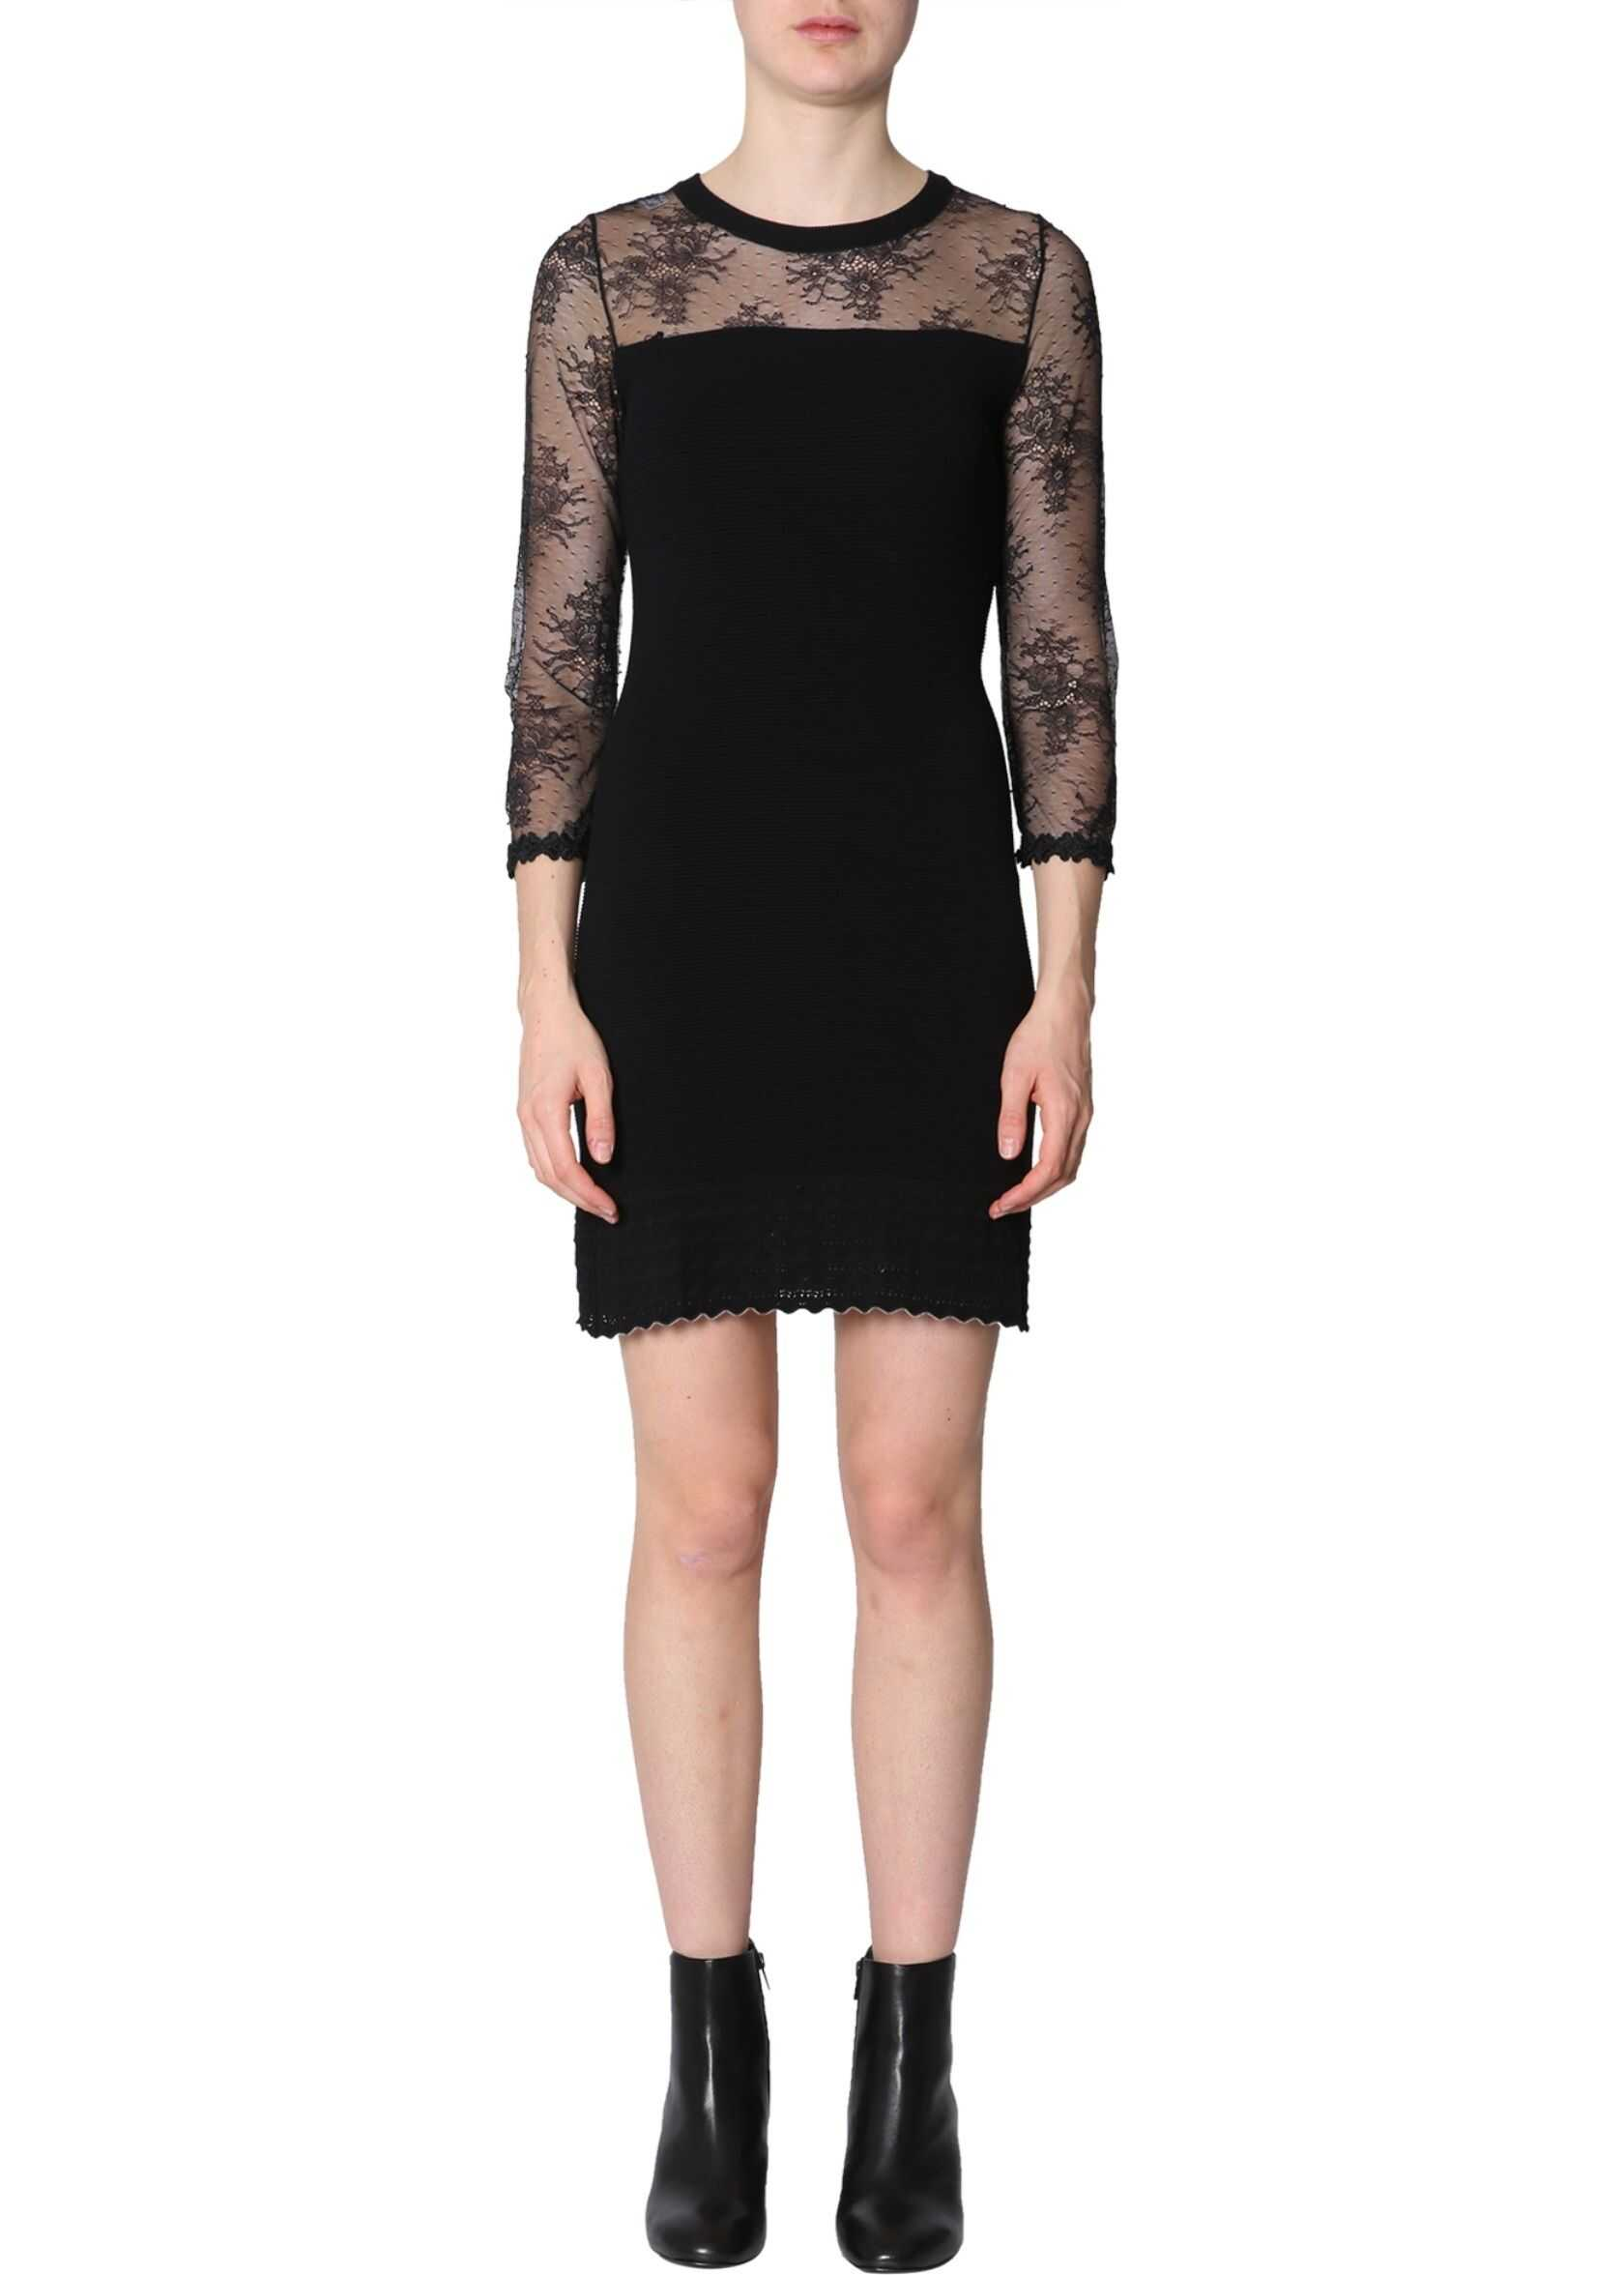 LOVE Moschino Dress With Lace Insert BLACK